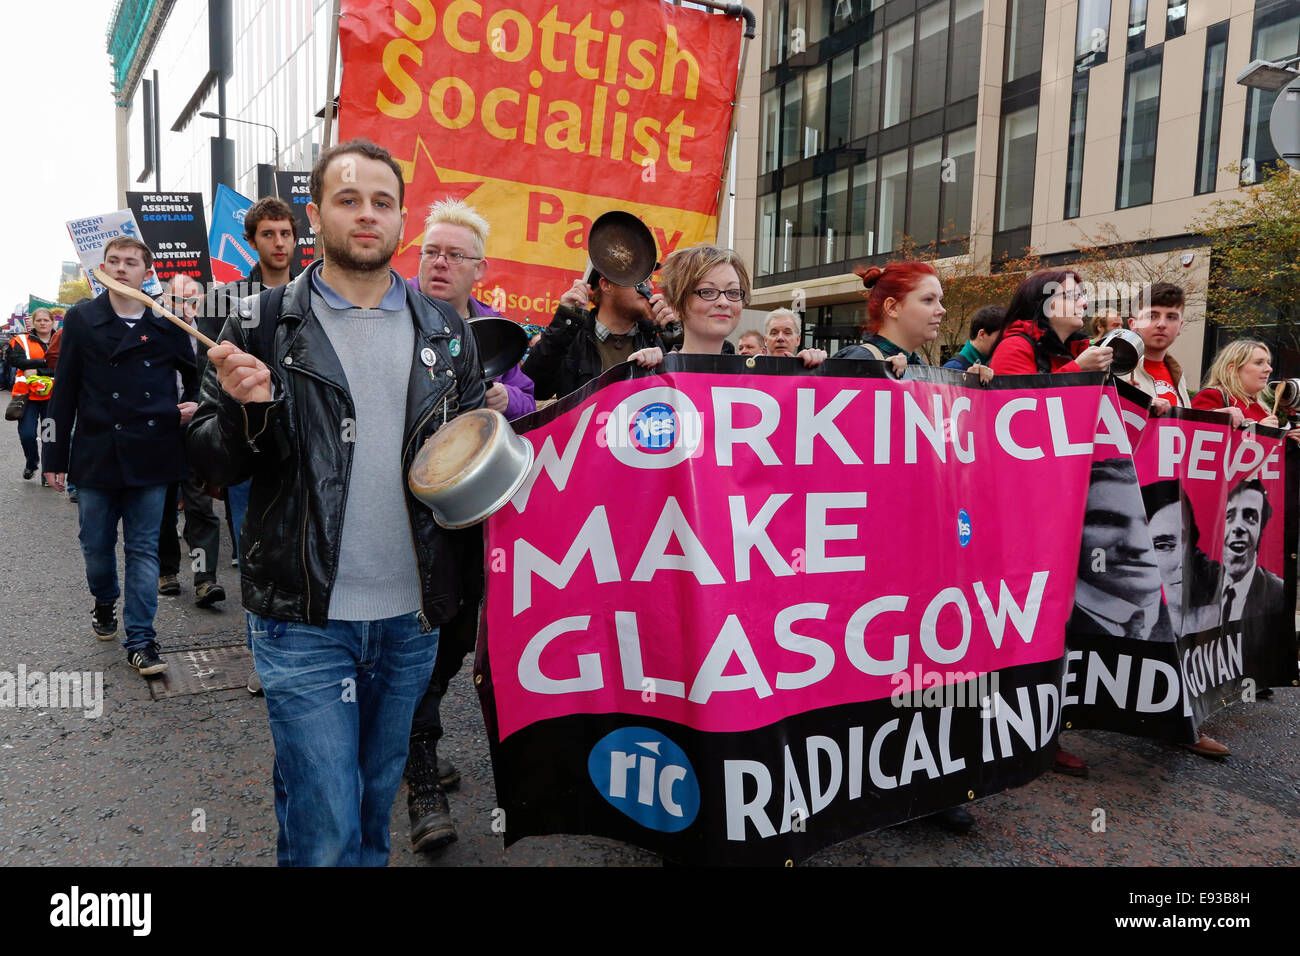 Glasgow, Scotland, UK. 18th October, 2014. The Scottish Trades Union Congress (STUC) organised a protest march starting - Stock Image